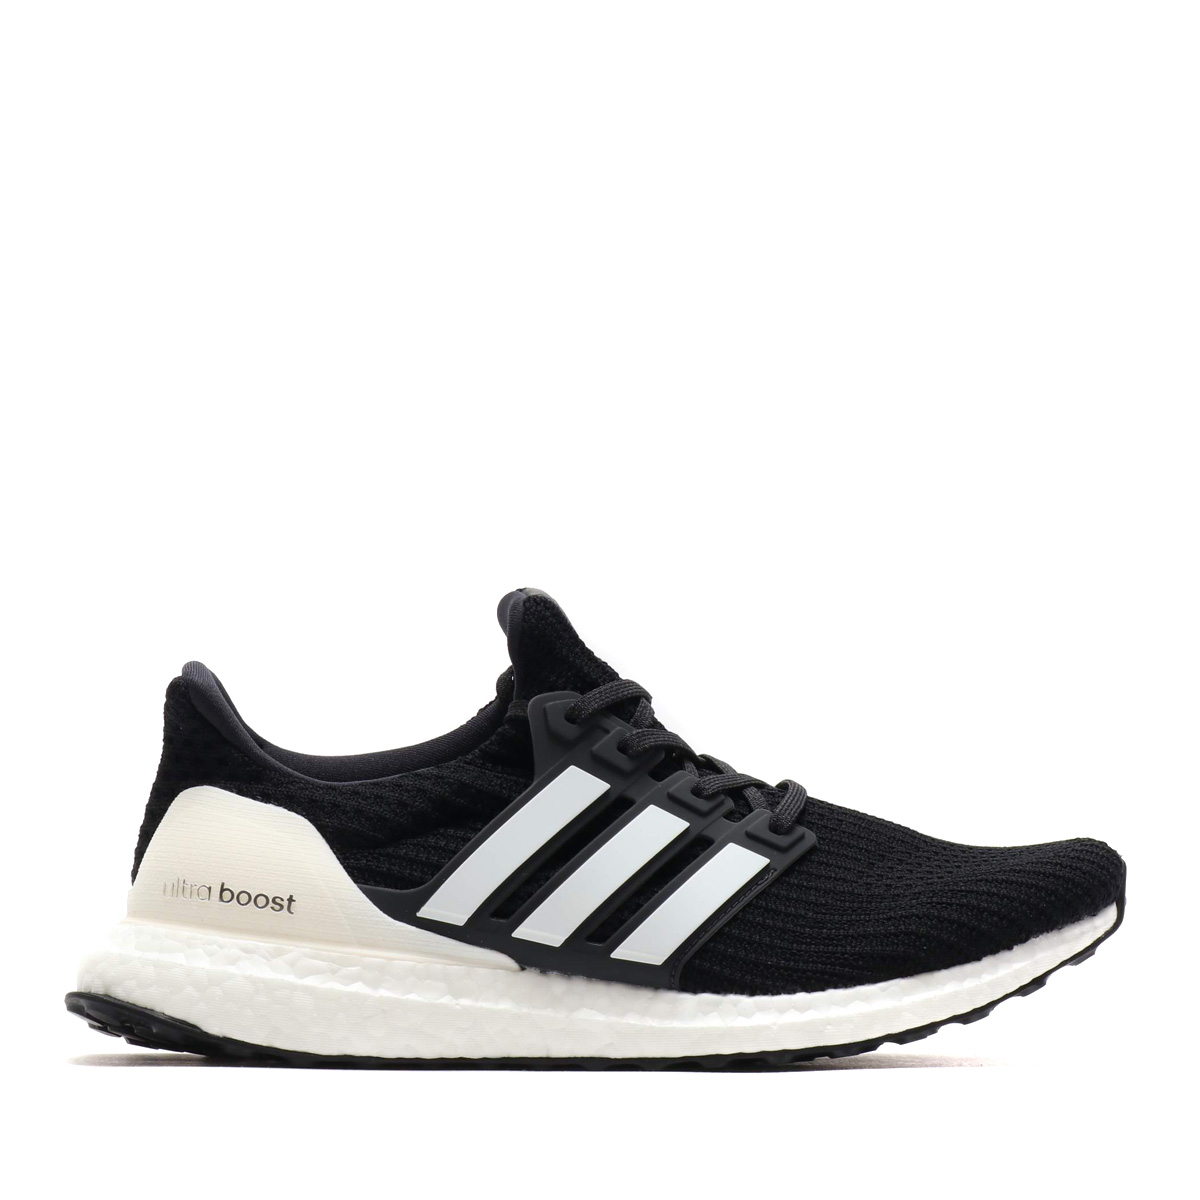 14884fb4d56 adidas UltraBOOST (Adidas ultra boost) core black   cloud white F18  carbon  S18 18FW-I